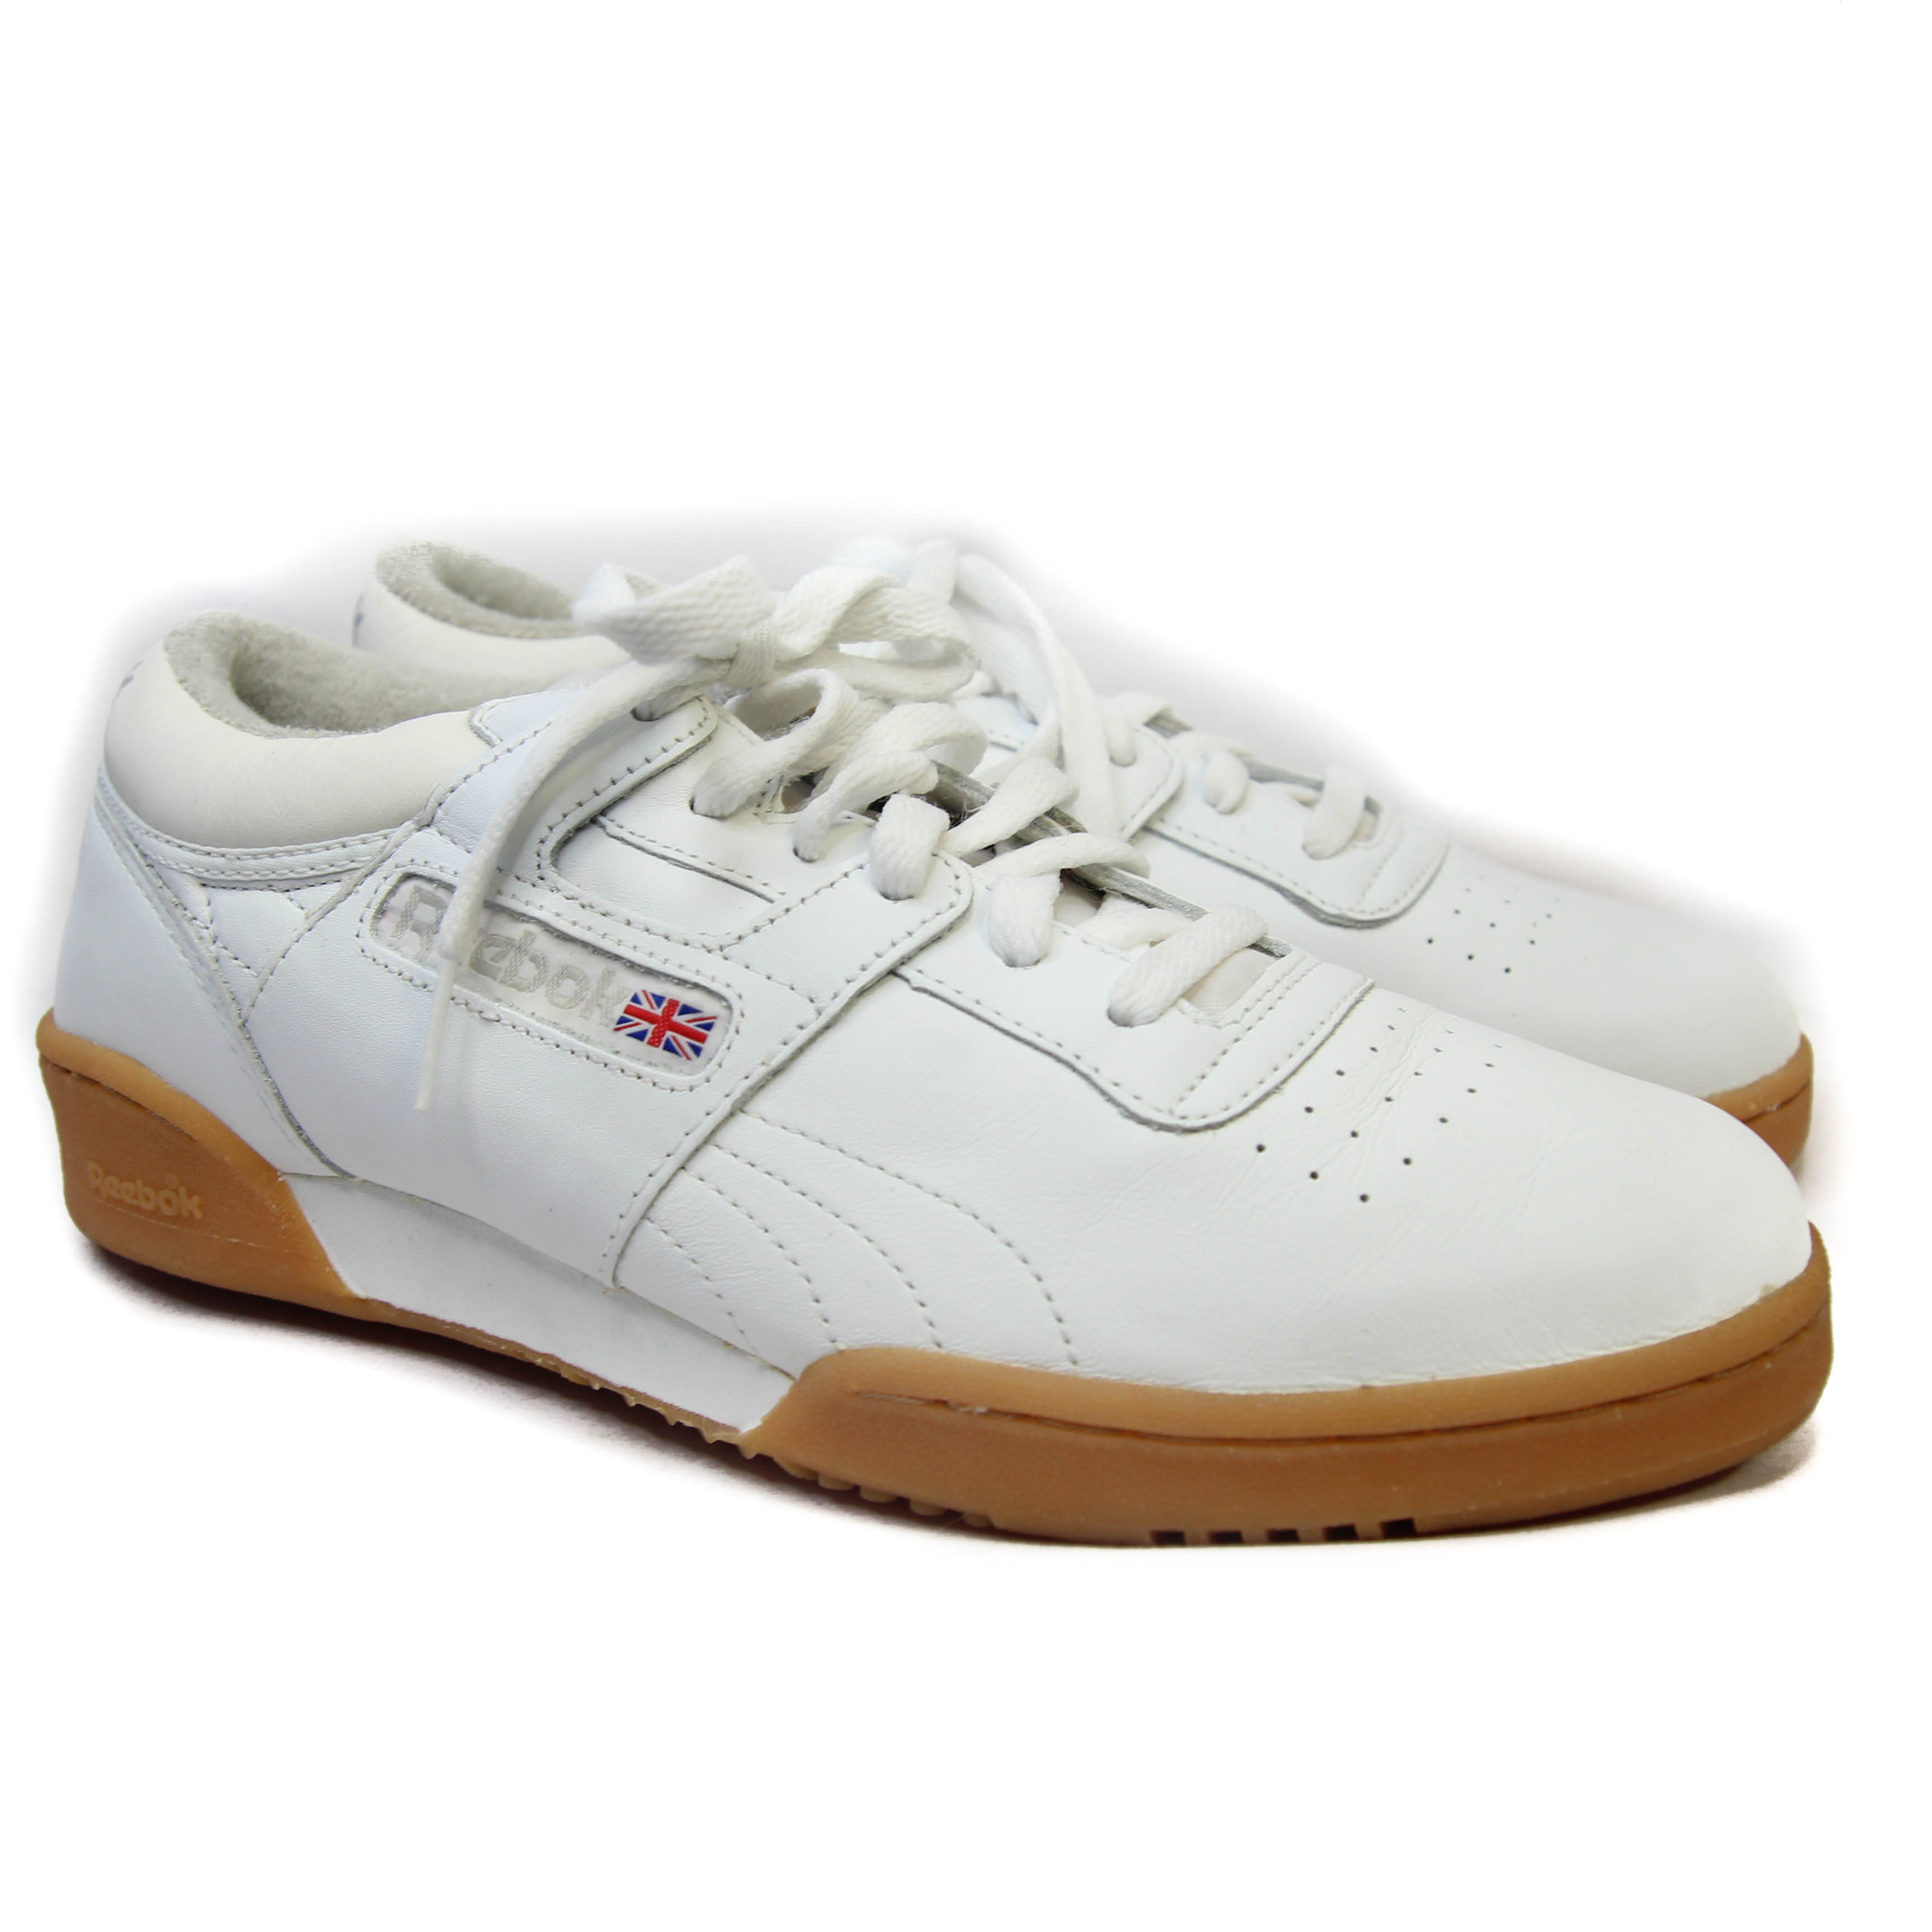 Reebok Classic Leather Athletic Shoe Gum Sole